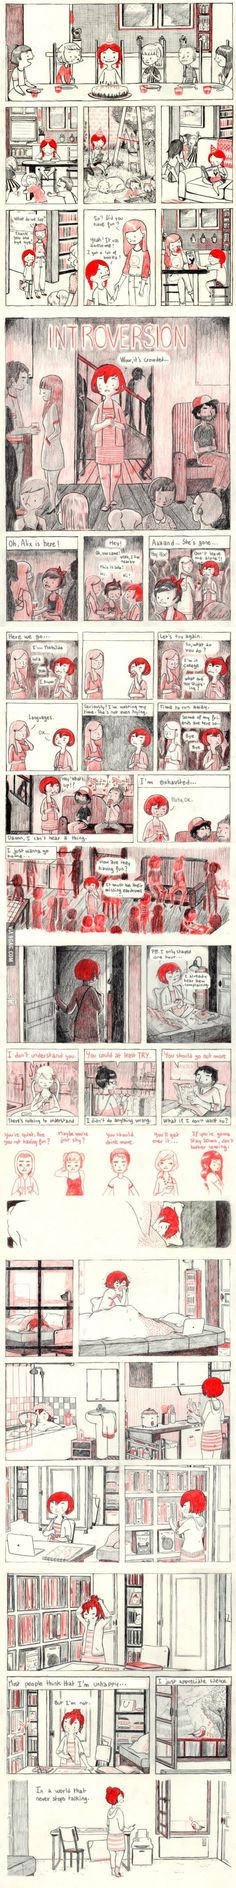 sweet little introversion comic